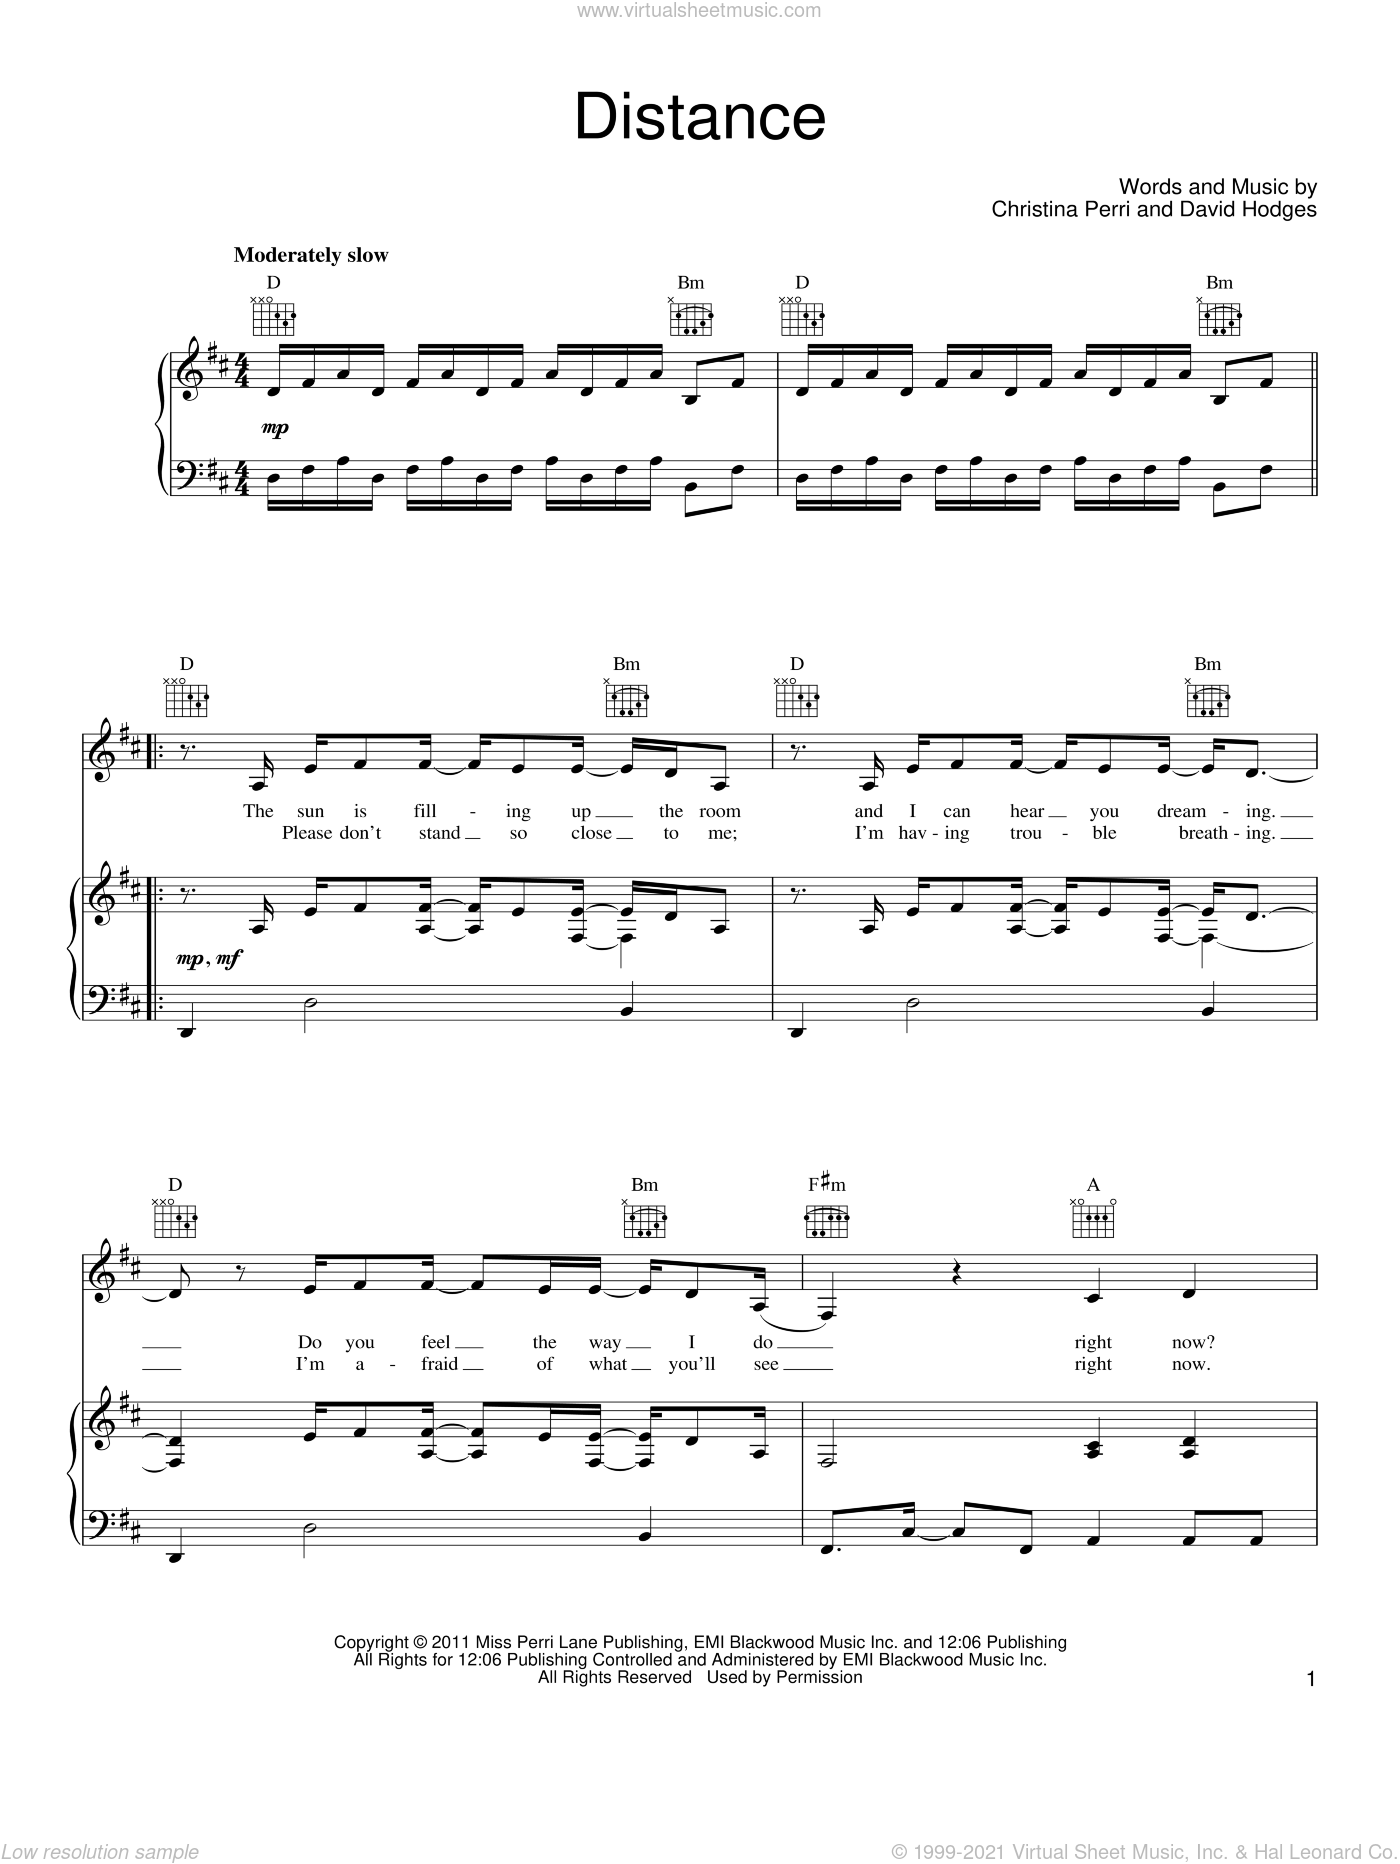 Distance sheet music for voice, piano or guitar by Christina Perri and David Hodges, intermediate skill level